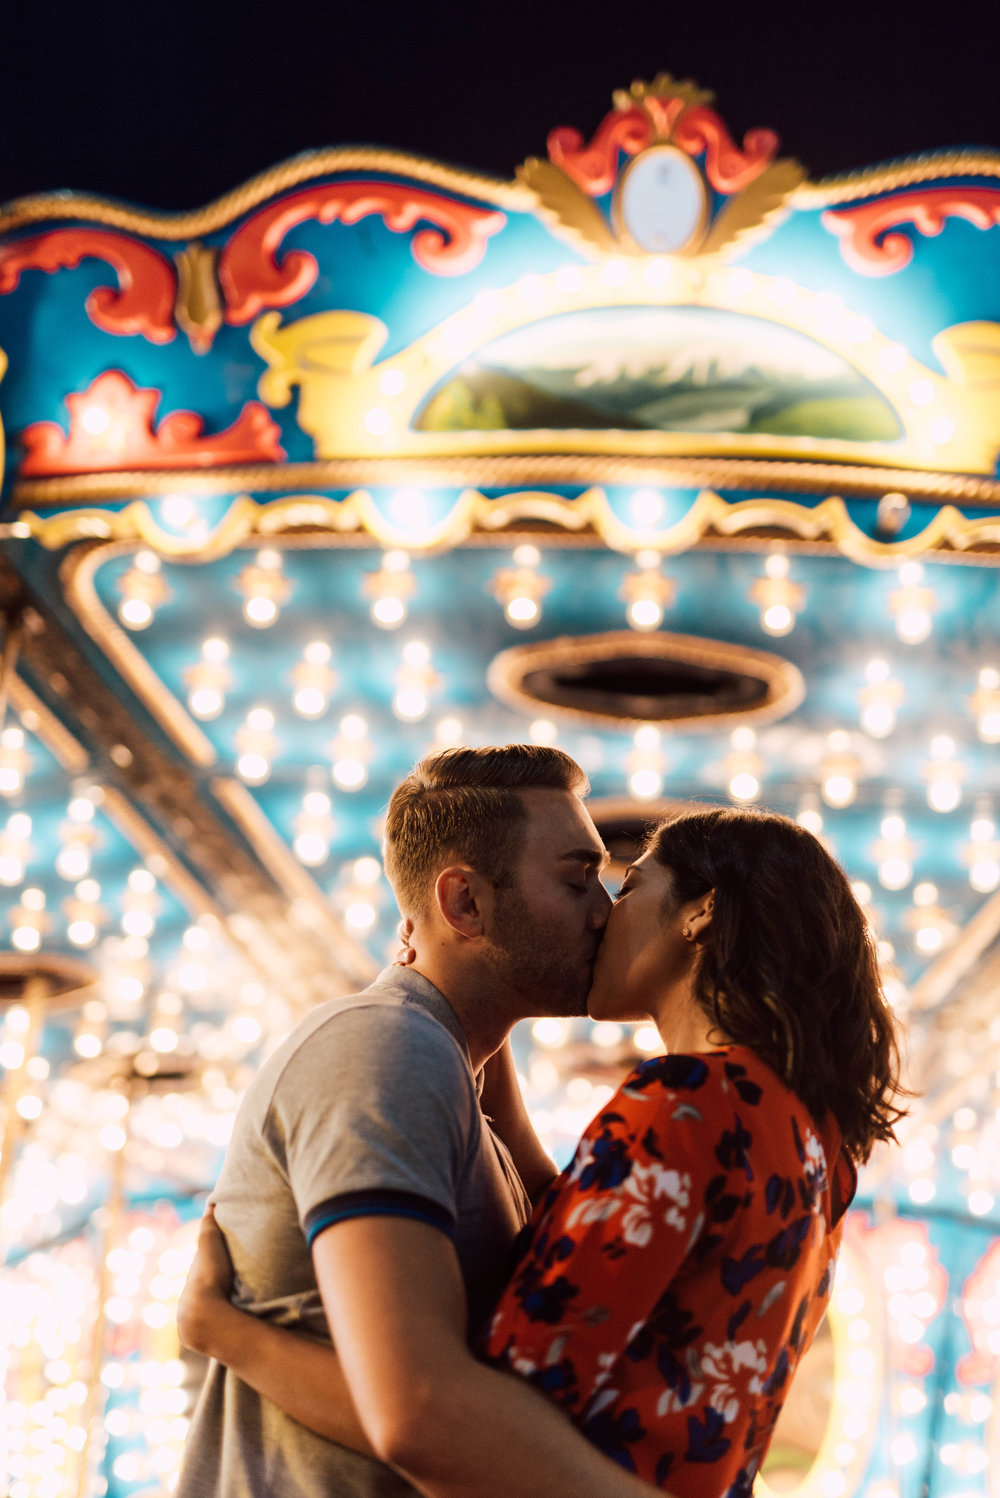 Ferris wheel kiss CNE engagement photography in toronto